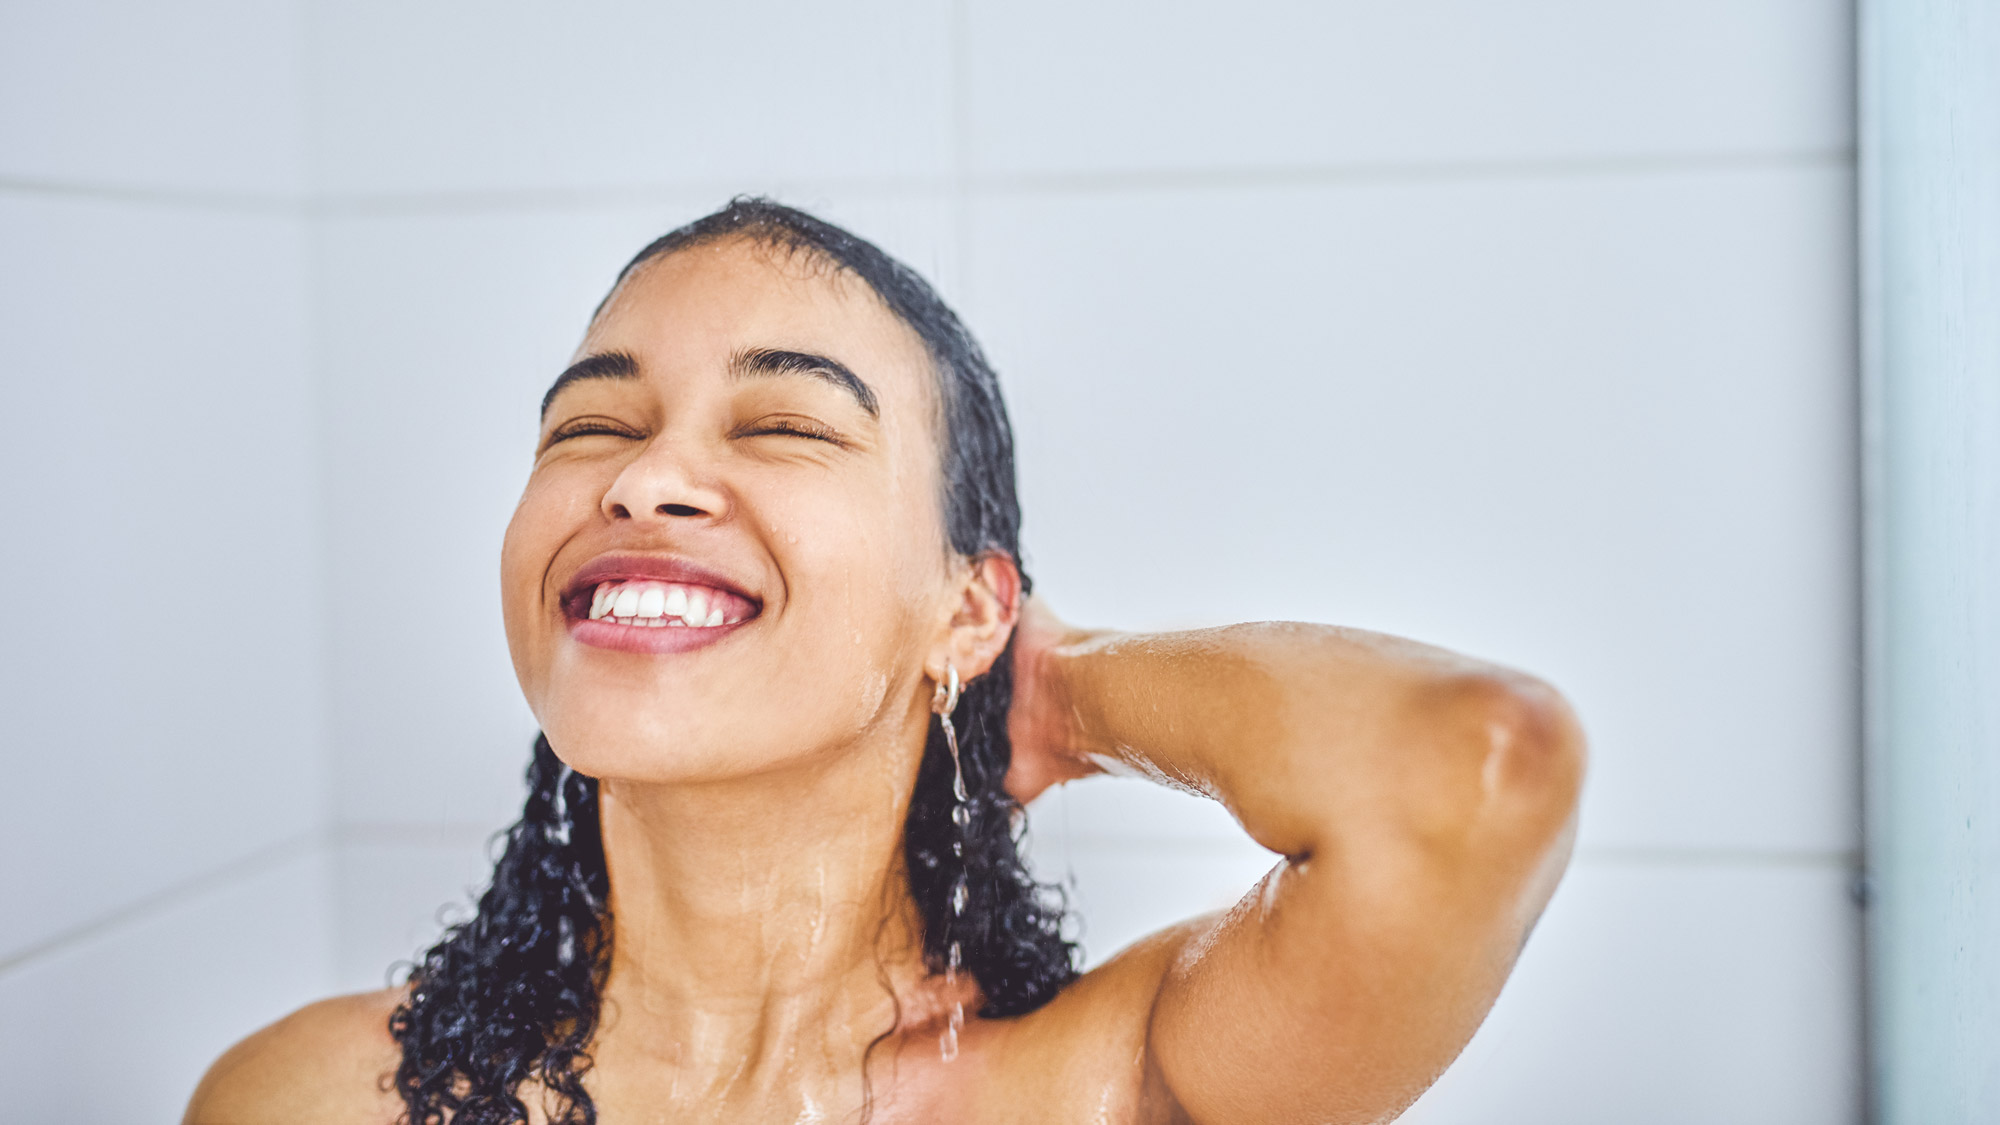 smiling woman in shower with wet hair